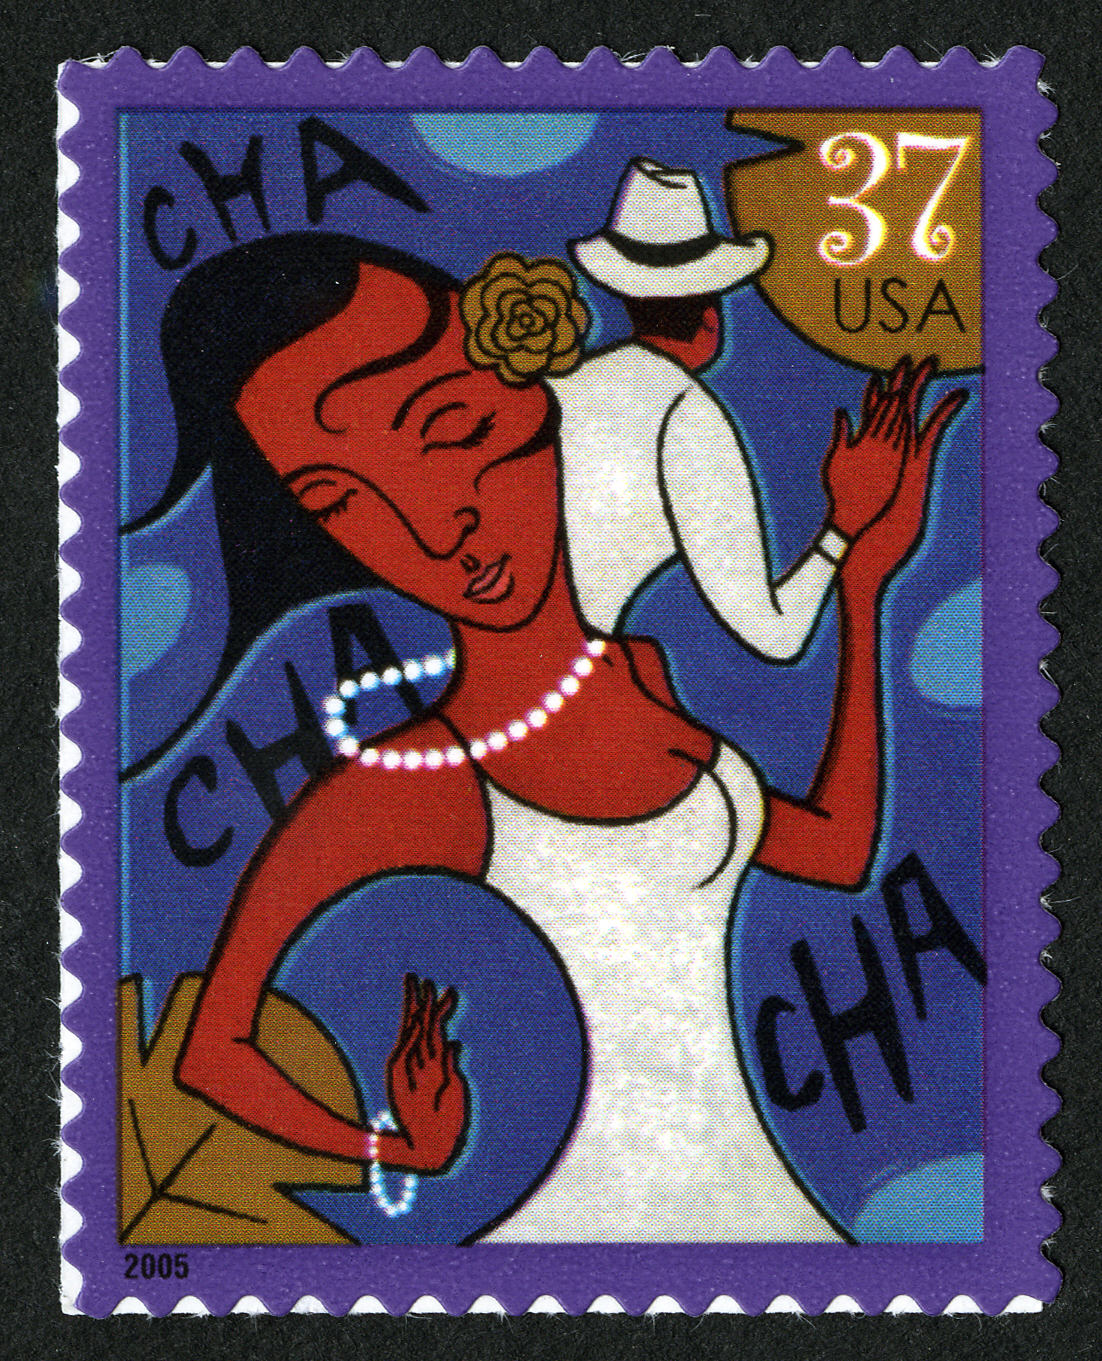 Brightly colored postage stamp with woman in dress in foreground, arms raised in dance. She holds hands with man in hat in background.